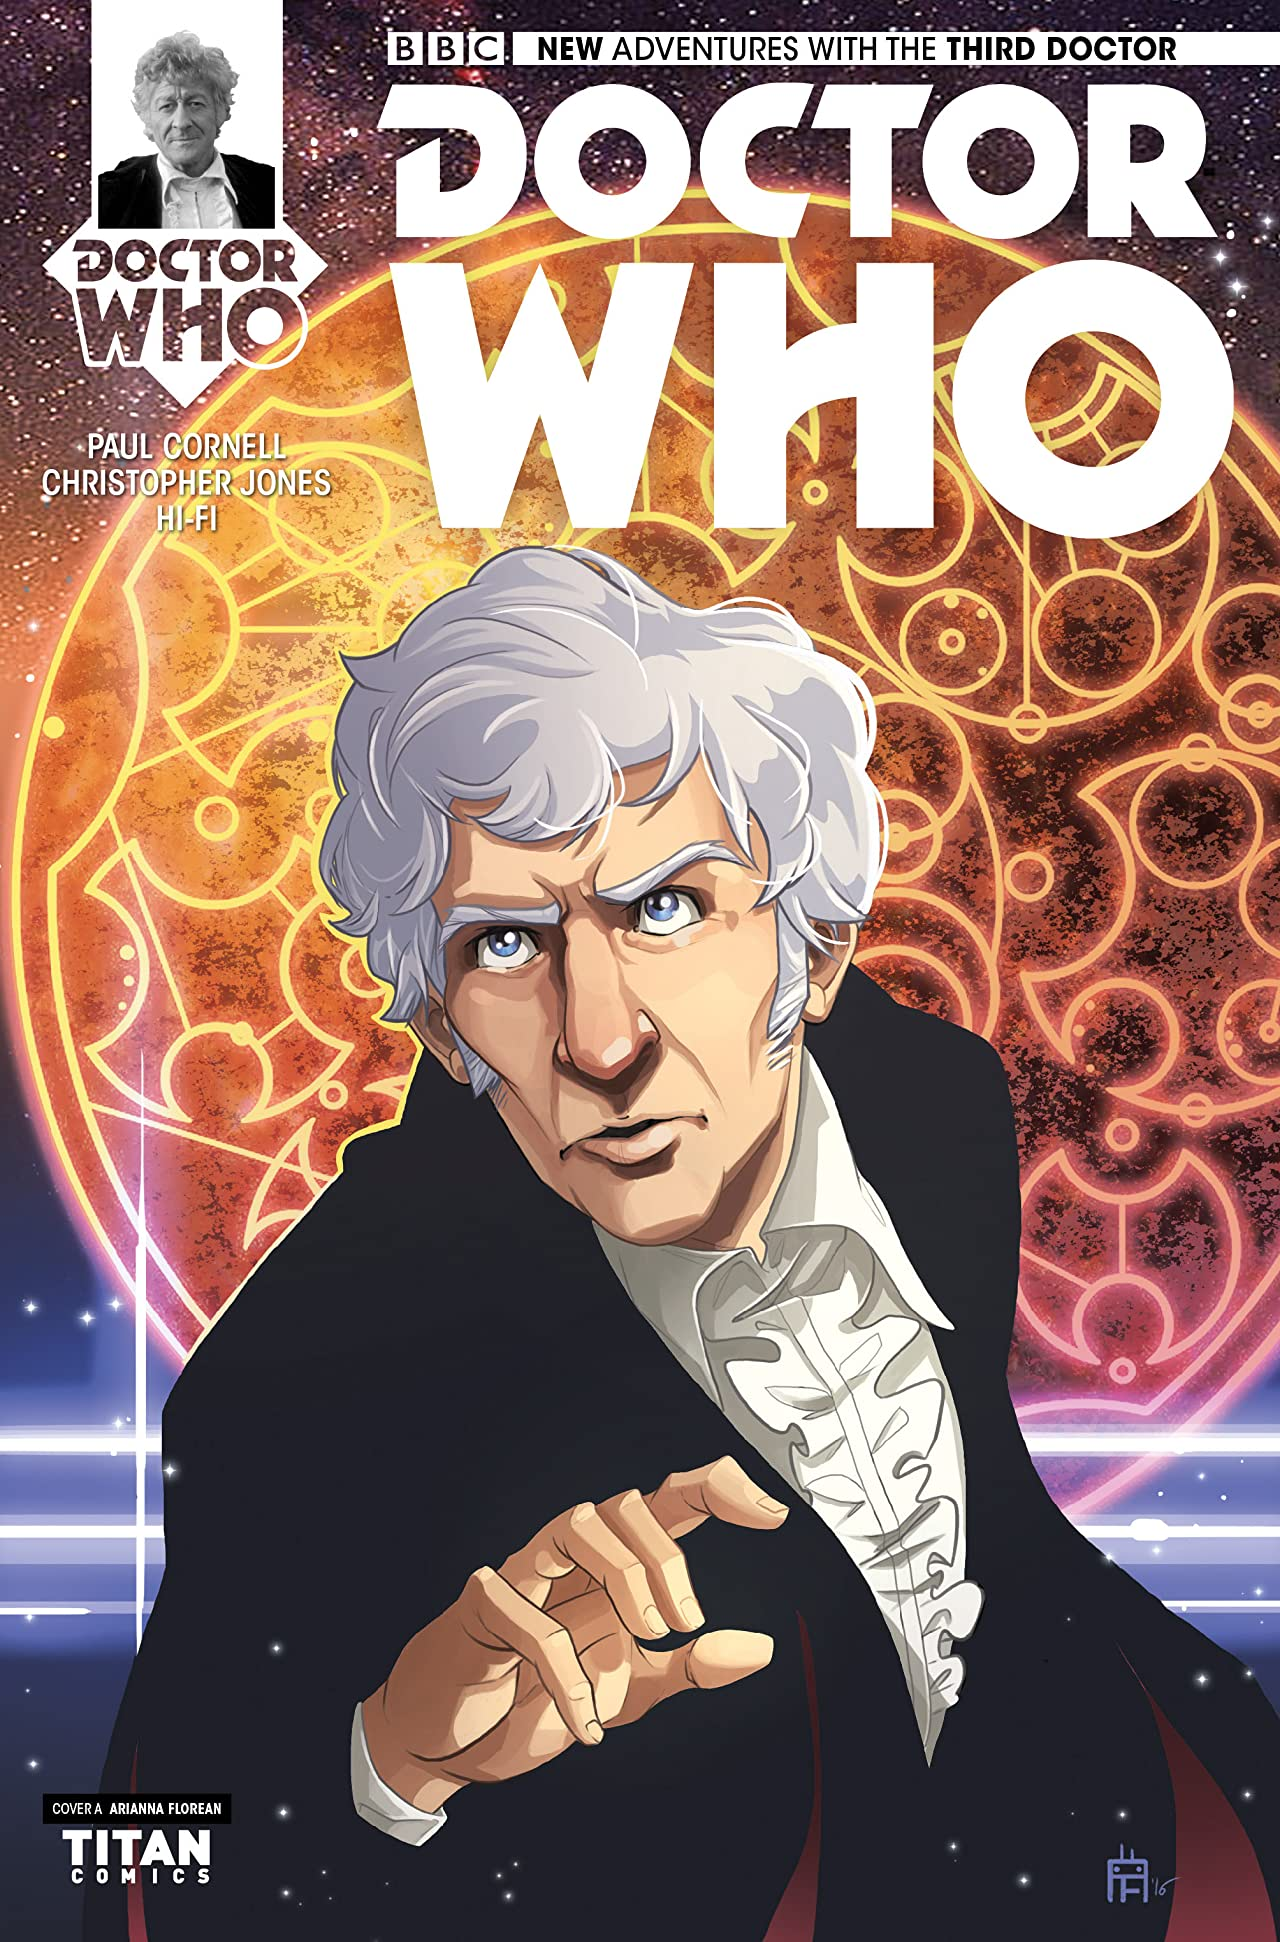 Doctor Who: The Third Doctor #3